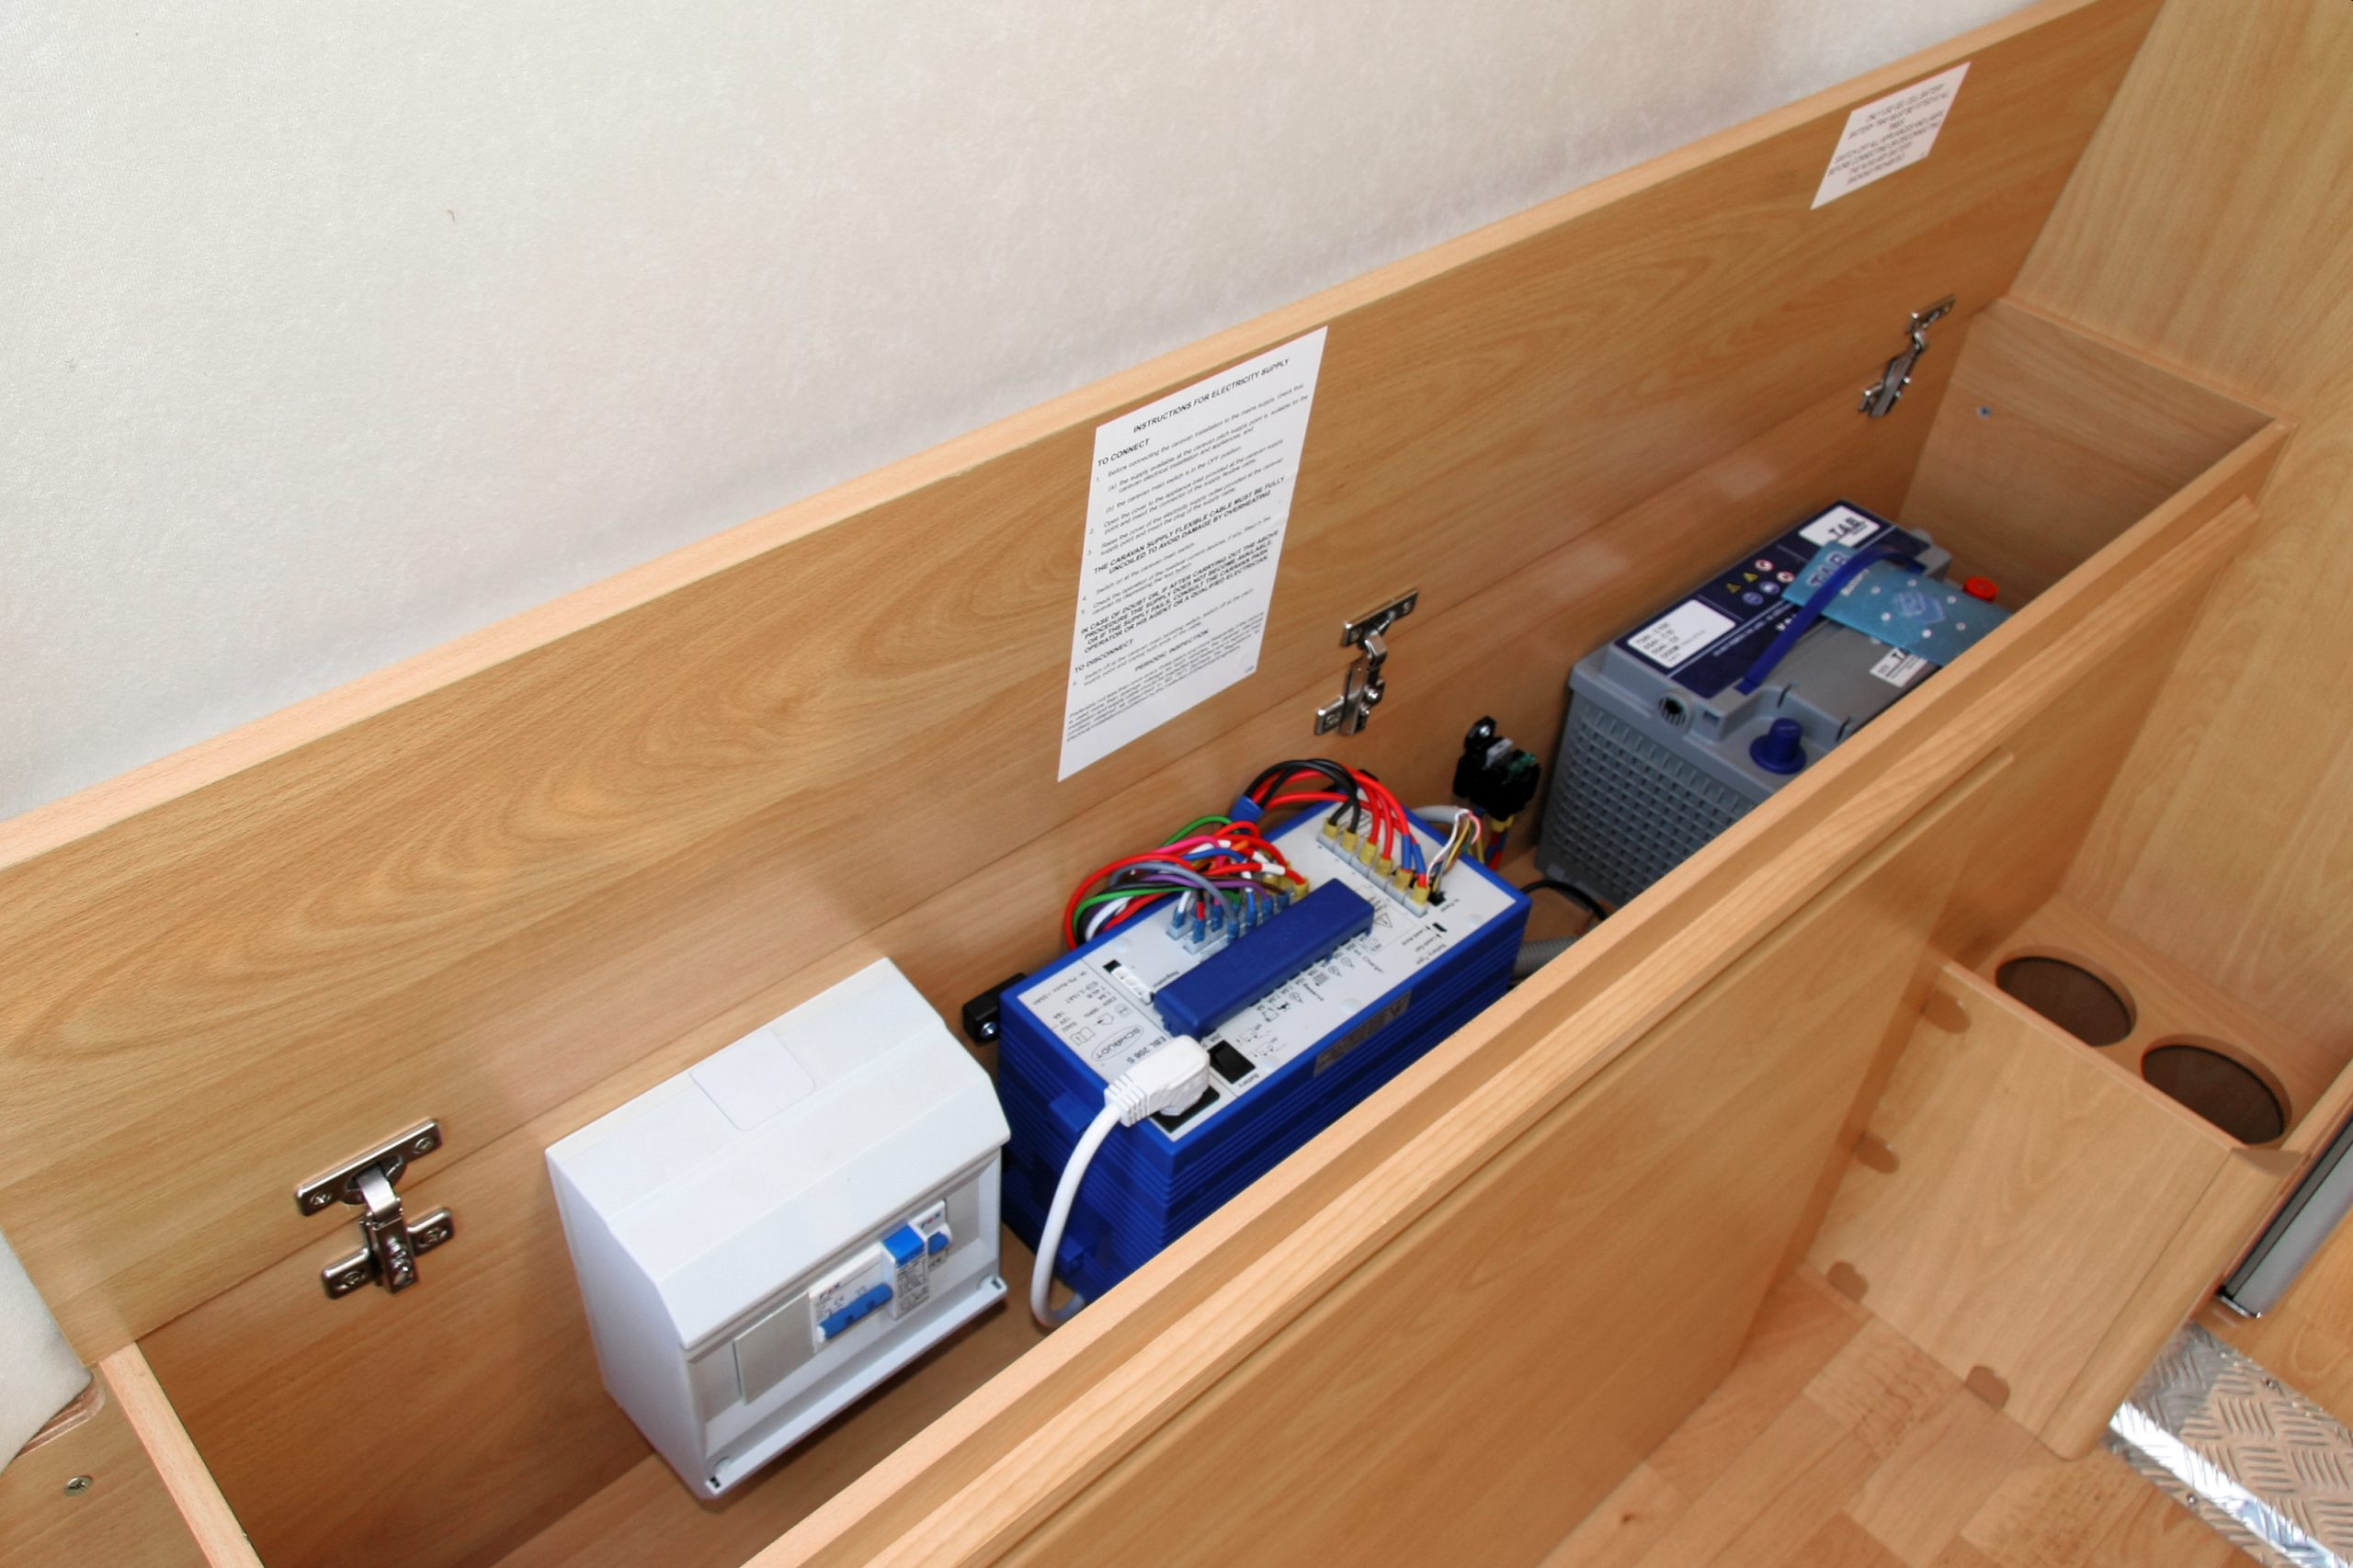 RV battery and electrical components inside storage cabinet - RV power converter troubleshooting